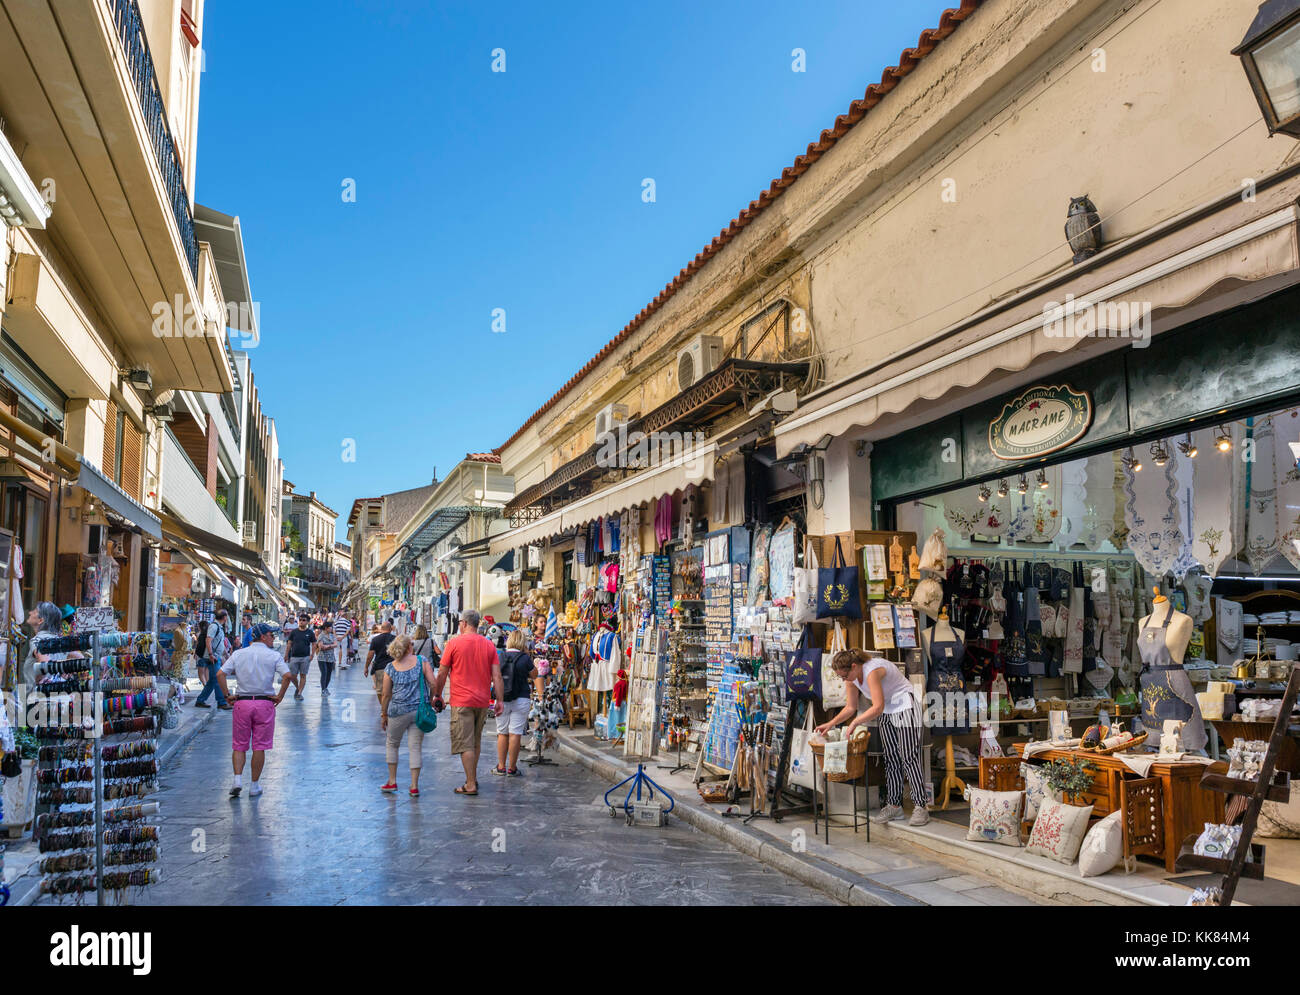 Shops on Adrianou Street in the Plaka district, Athens, Greece - Stock Image